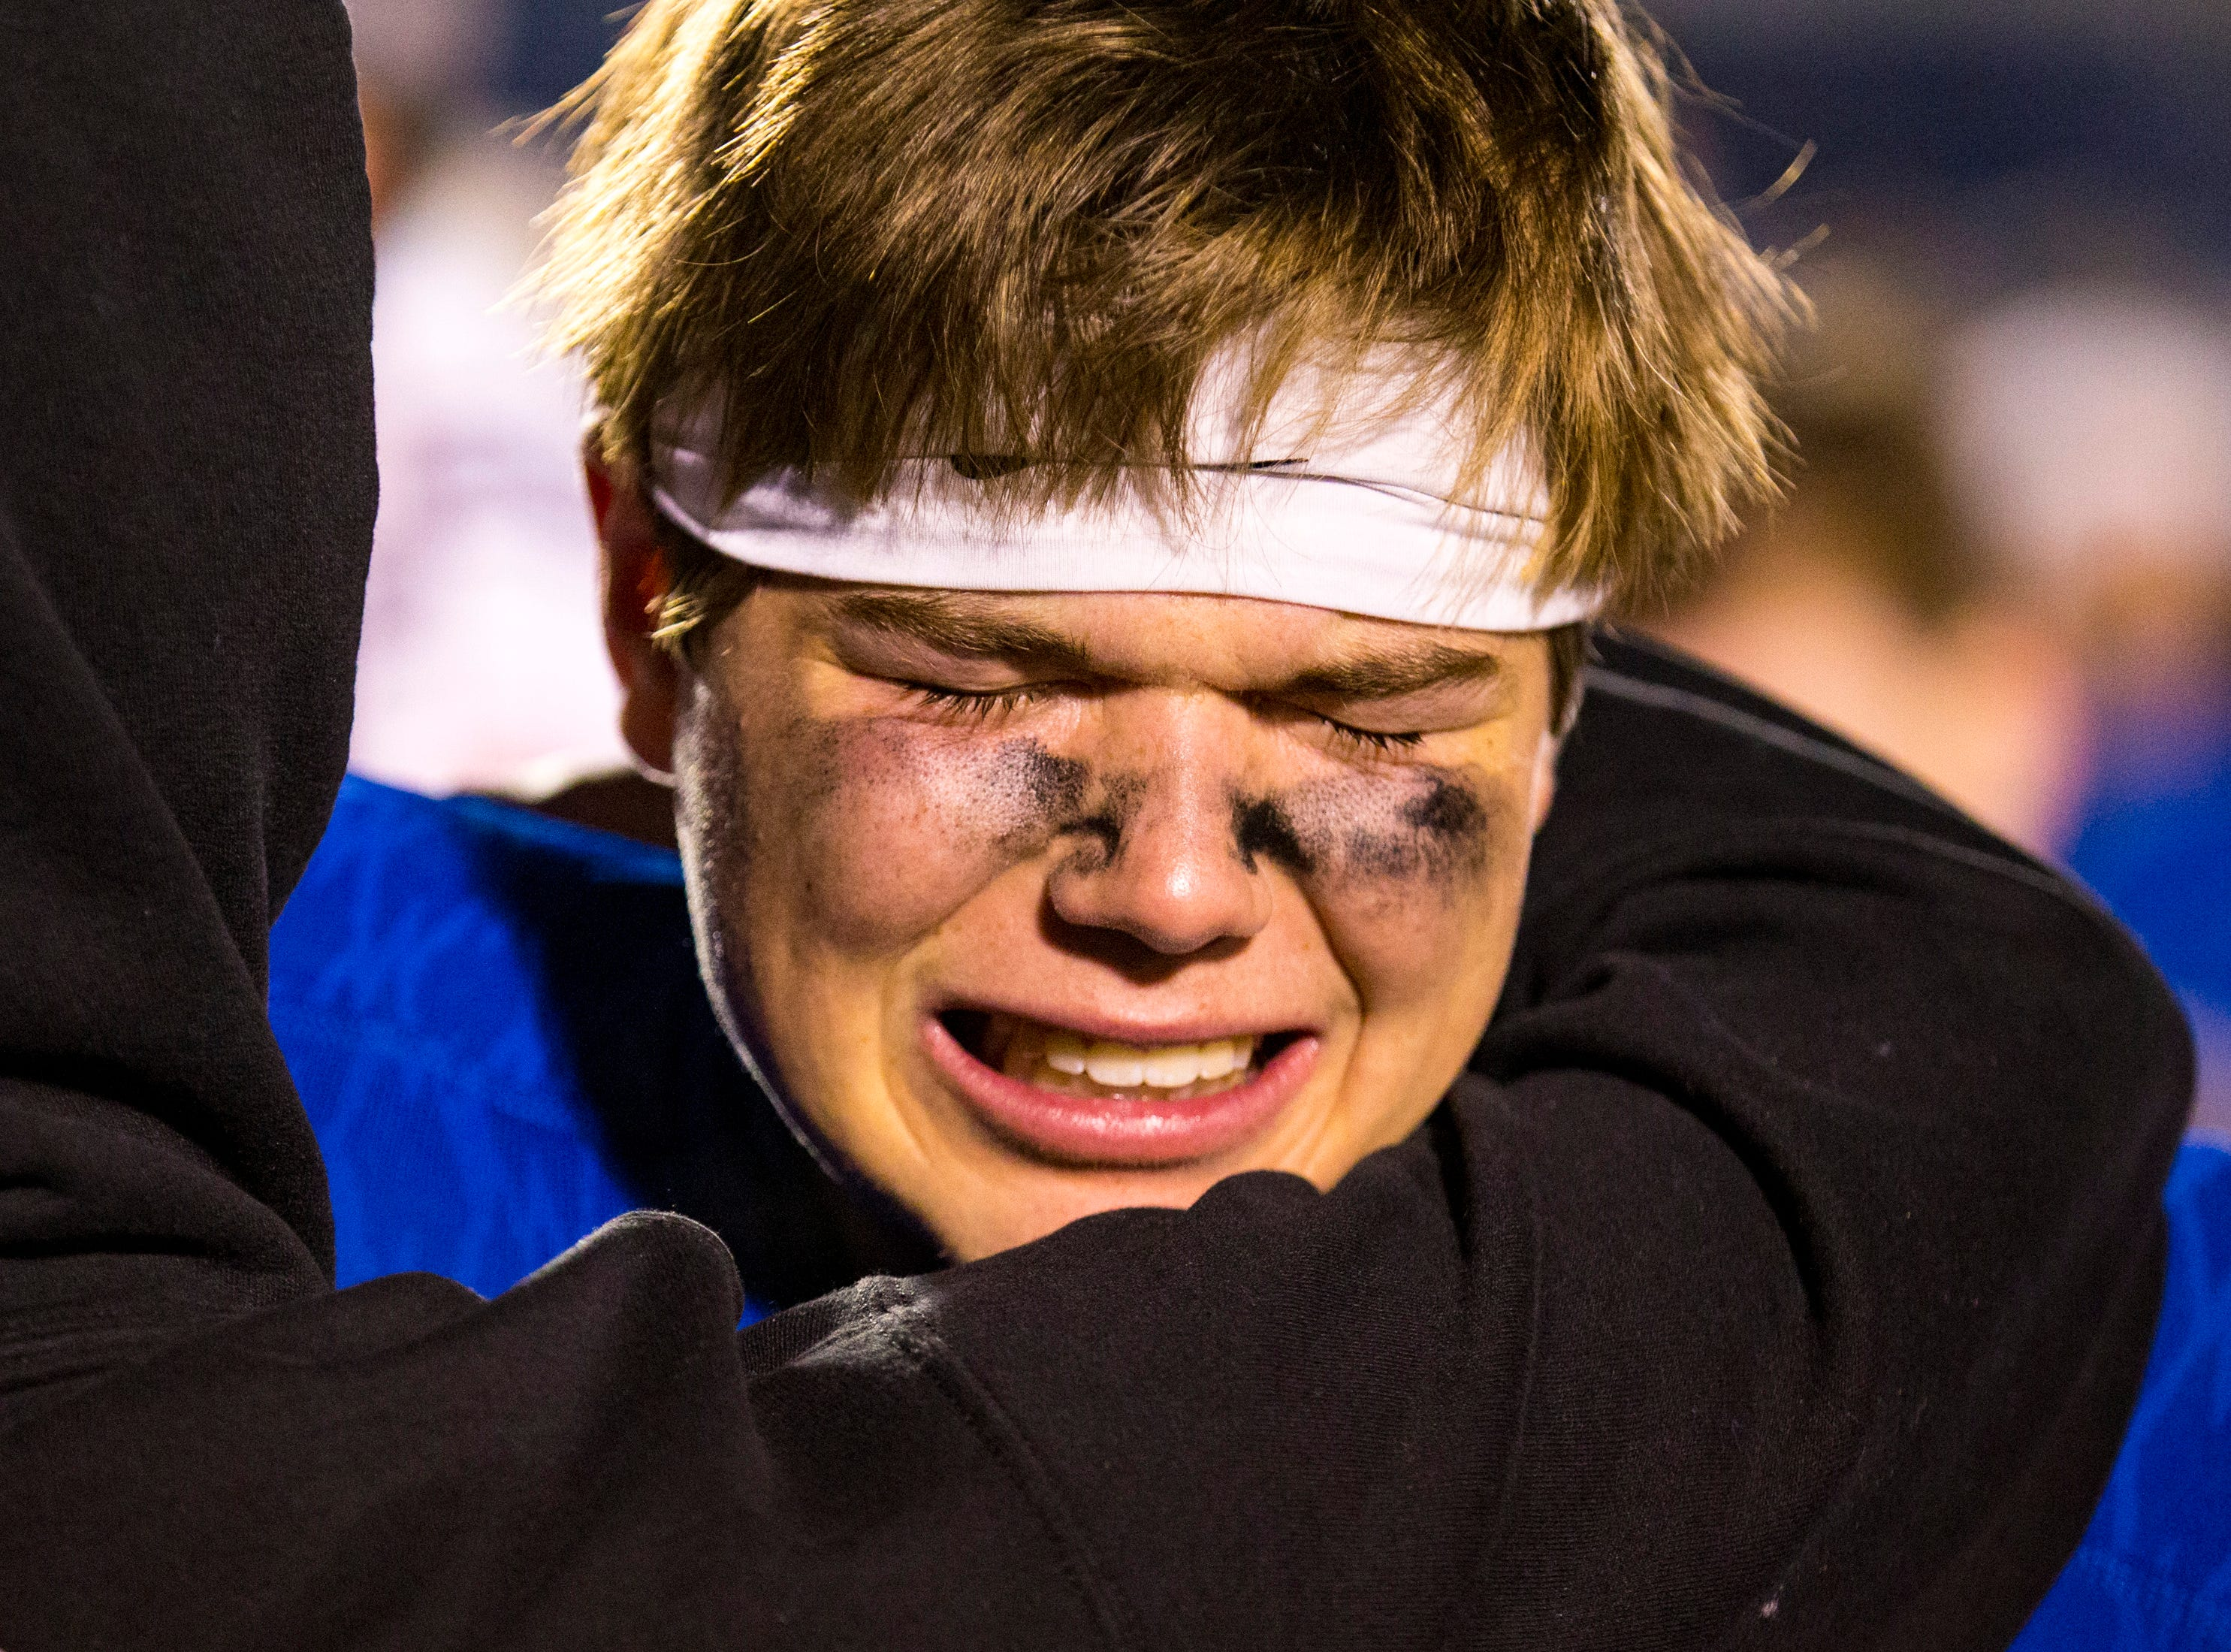 Brentwood's Caleb Hassenpflug (15) is emotional after Brentwood's game against Ravenwood at Brentwood High School in Brentwood on Friday, Nov. 16, 2018.